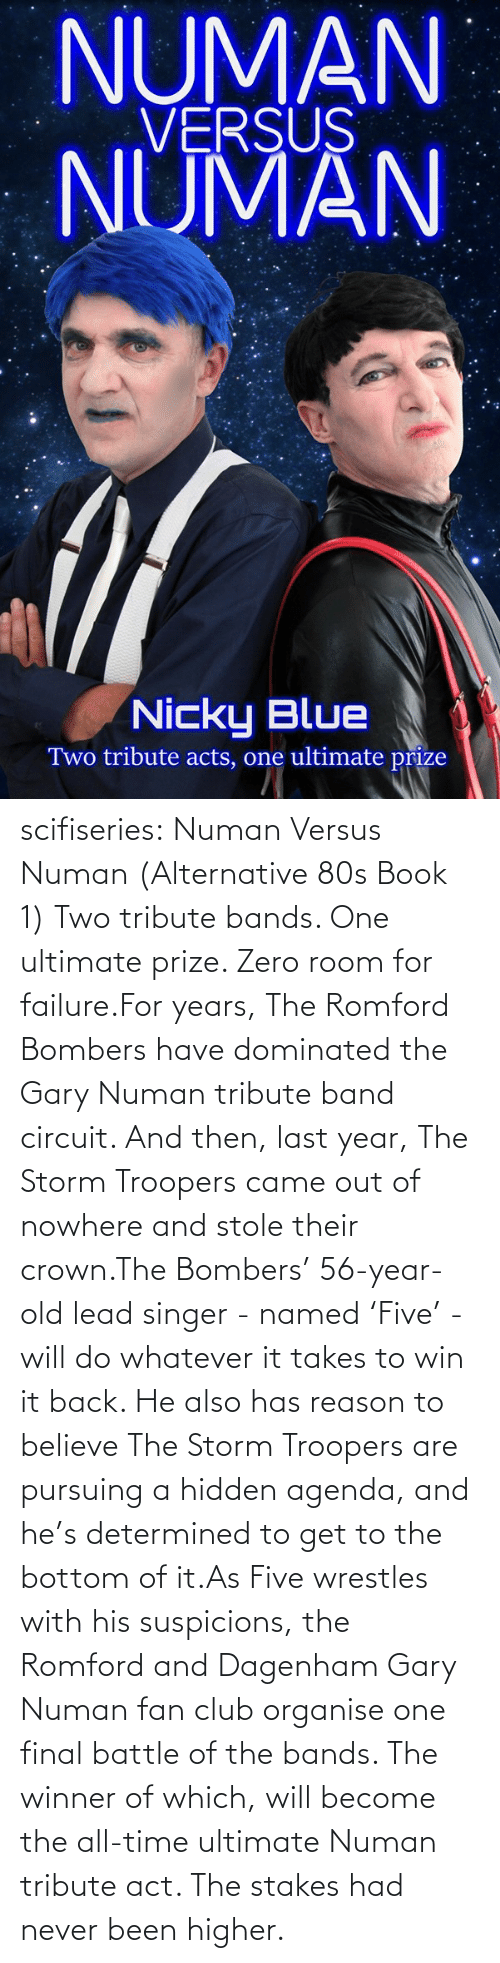 hidden: NUMAN  VERSUS  NUMAN  Nicky Blue  Two tribute acts, one ultimate prize scifiseries:  Numan Versus Numan (Alternative 80s Book 1) Two tribute bands. One ultimate prize. Zero room for failure.For  years, The Romford Bombers have dominated the Gary Numan tribute band  circuit. And then, last year, The Storm Troopers came out of nowhere and  stole their crown.The Bombers' 56-year-old lead singer - named  'Five' - will do whatever it takes to win it back. He also has reason to  believe The Storm Troopers are pursuing a hidden agenda, and he's  determined to get to the bottom of it.As Five wrestles with his  suspicions, the Romford and Dagenham Gary Numan fan club organise one  final battle of the bands. The winner of which, will become the all-time  ultimate Numan tribute act. The stakes had never been higher.